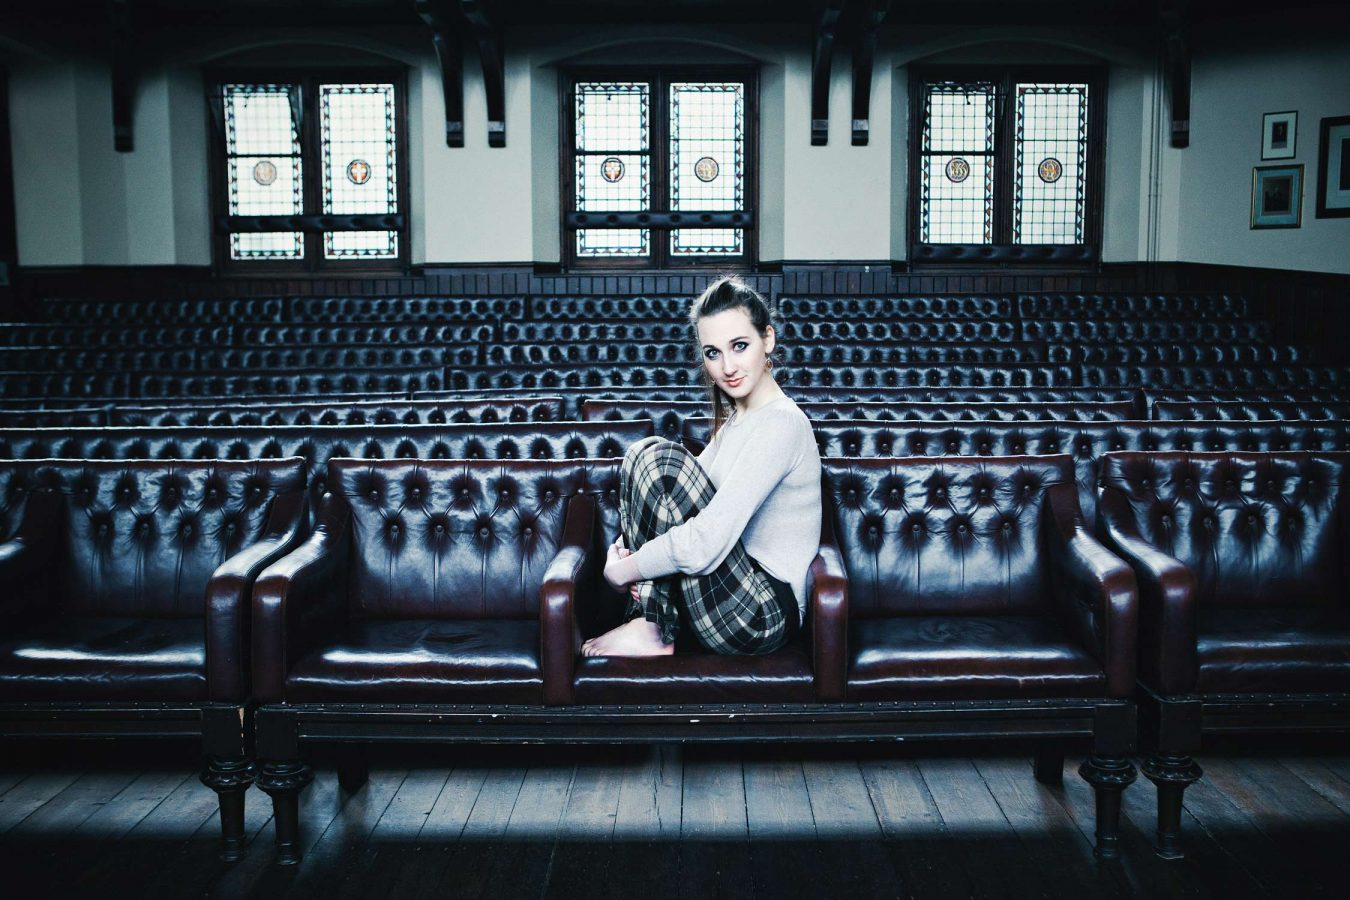 actress-location-portrait-photography-debating-chamber-cambridge